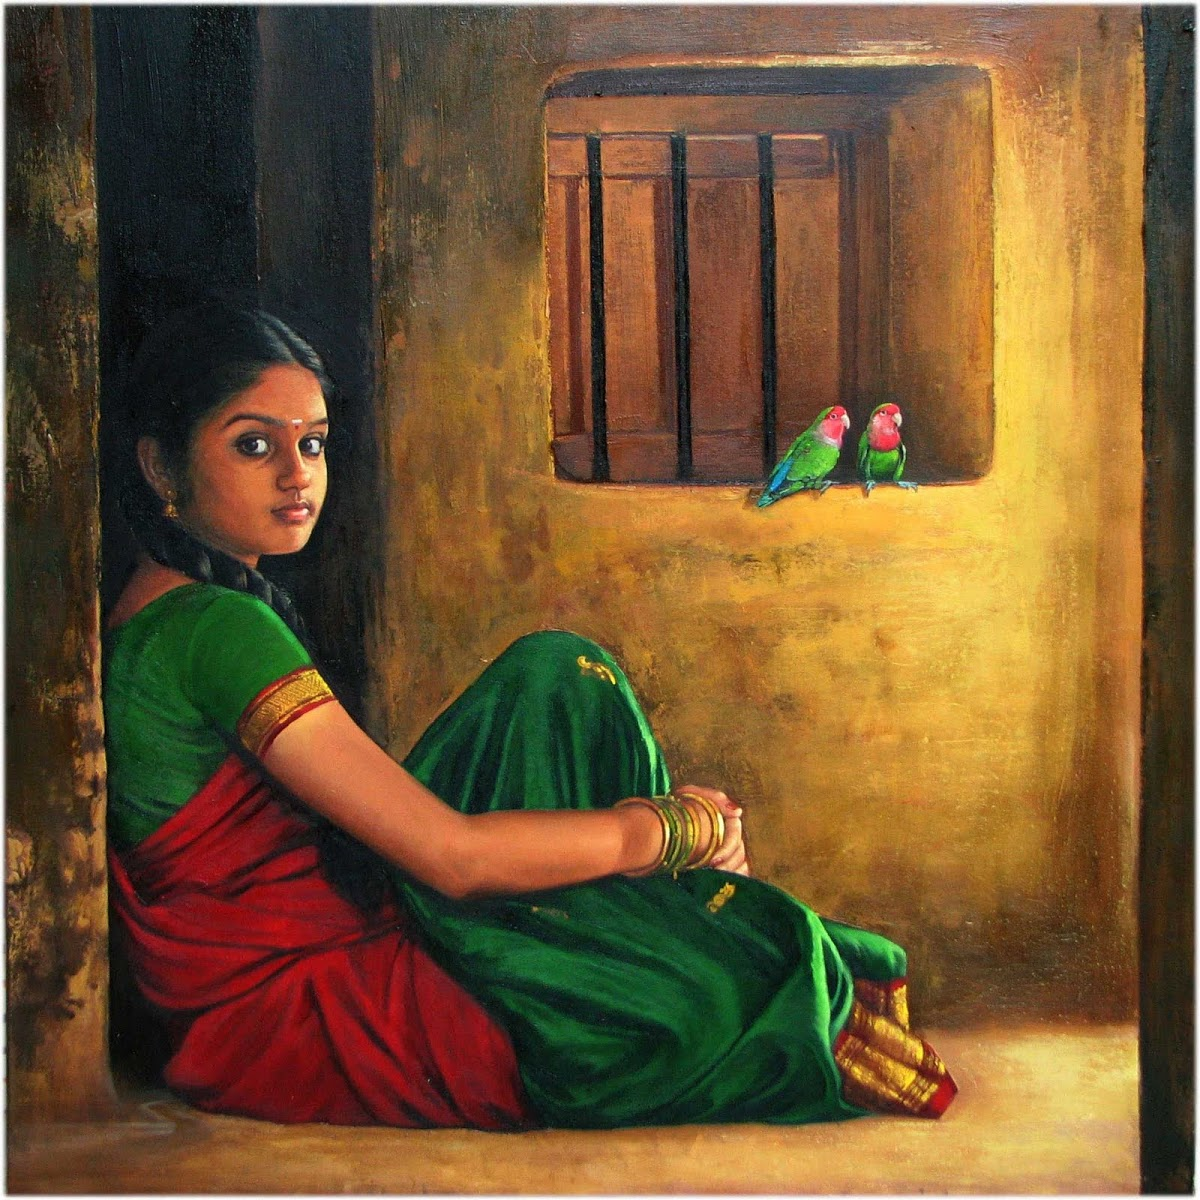 acrylic painting artwork girl tamilnadu by illayaraja